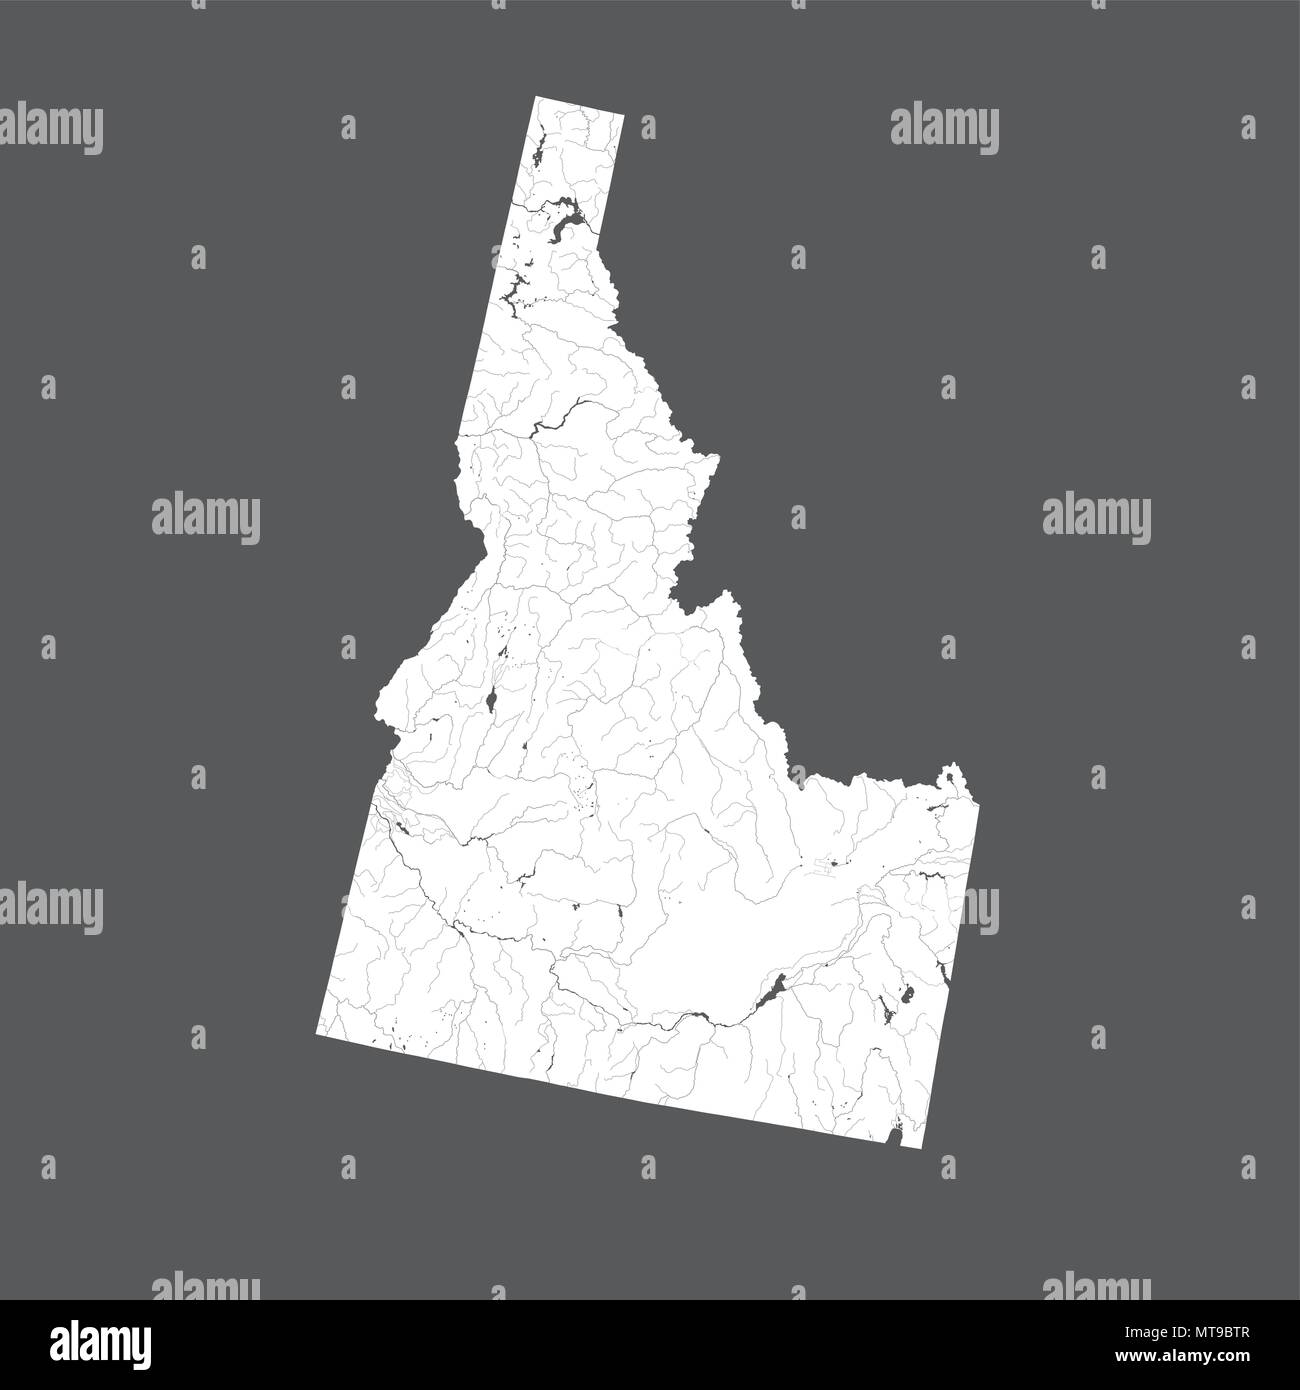 U.S. states - map of Idaho. Hand made. Rivers and lakes are shown. Please look at my other images of cartographic series - they are all very detailed  - Stock Vector